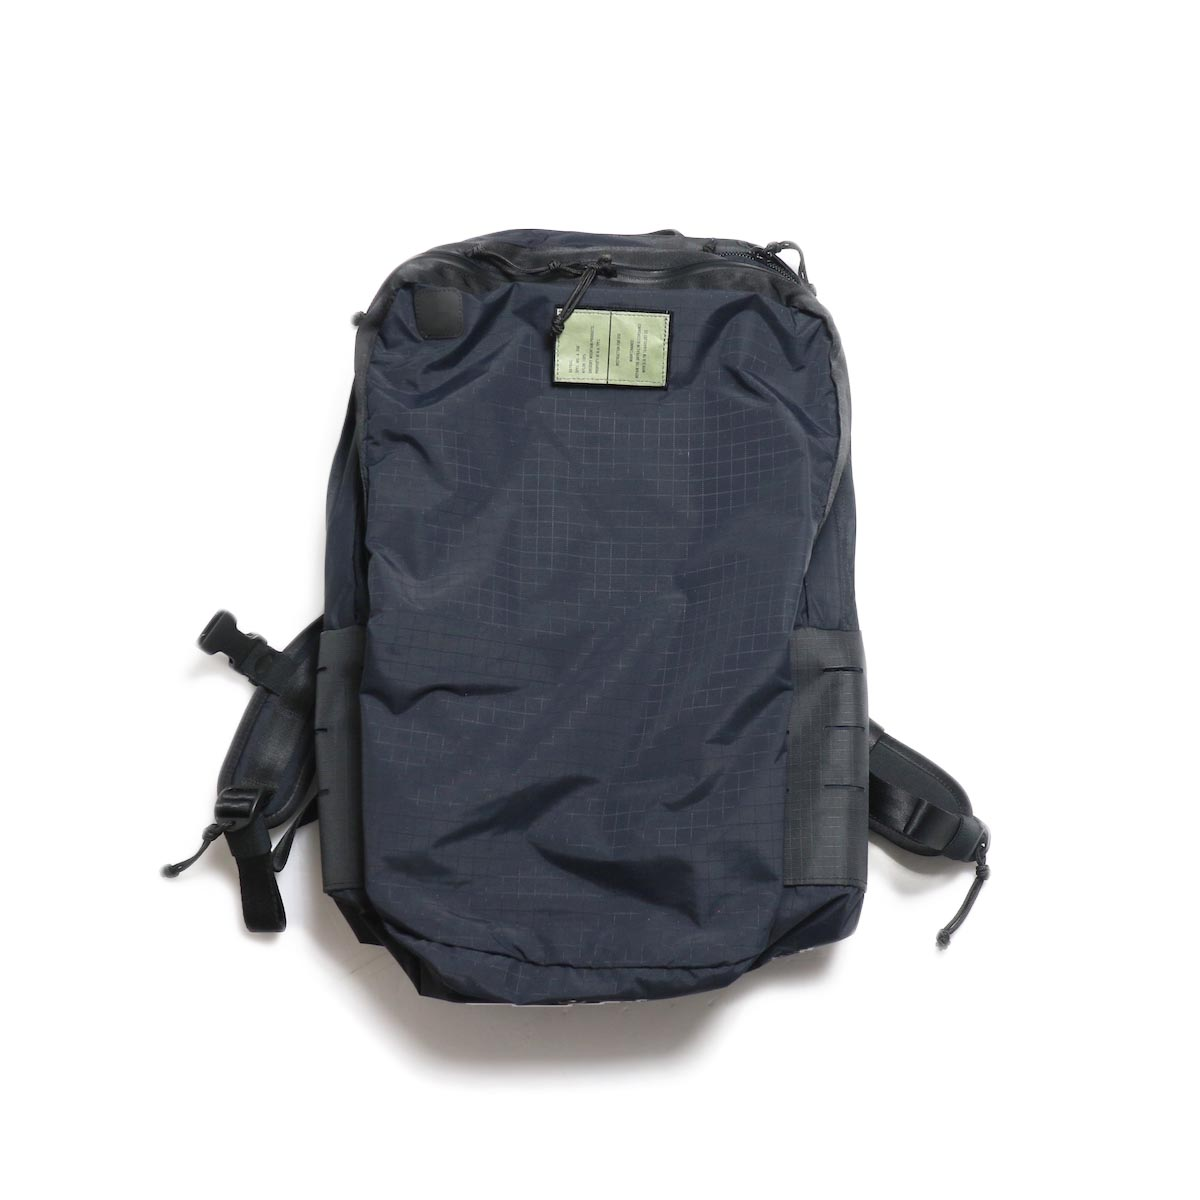 N.HOOLYWOOD × GREGORY / 991-AC05 pieces Back Pack -Black